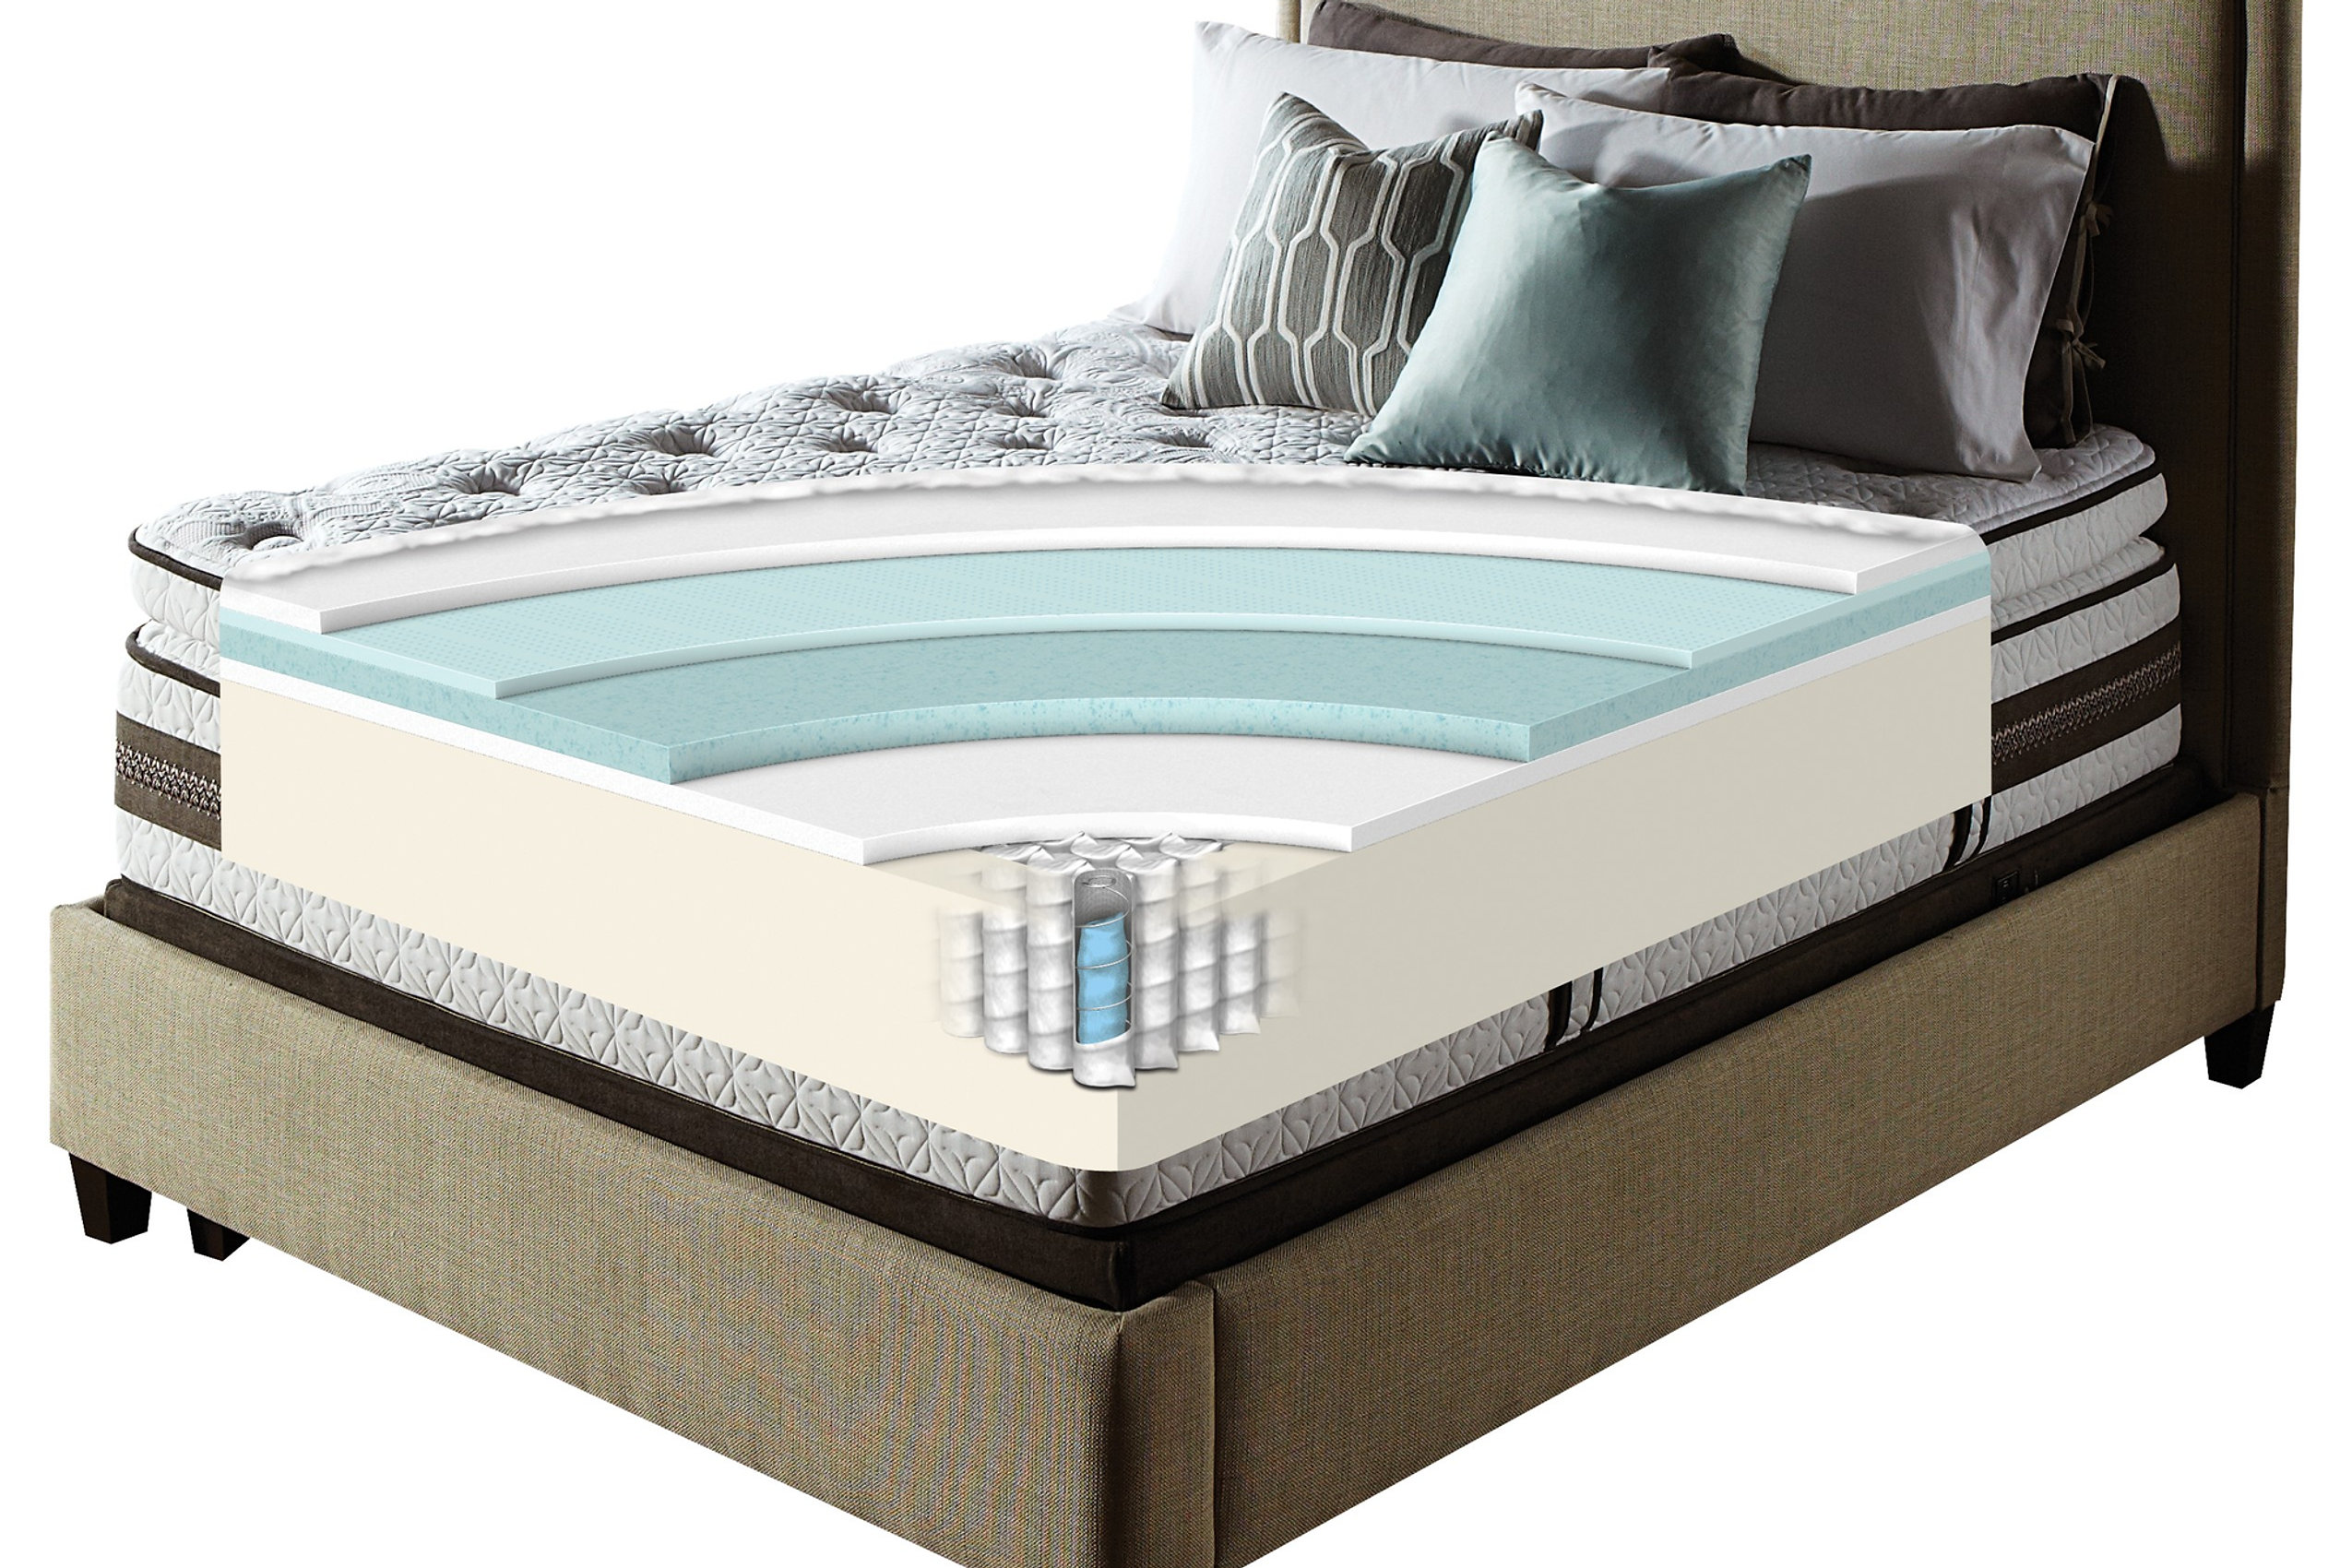 beds gorgeous serta best mattress p will review reports consumer adjustable reviews iseries on